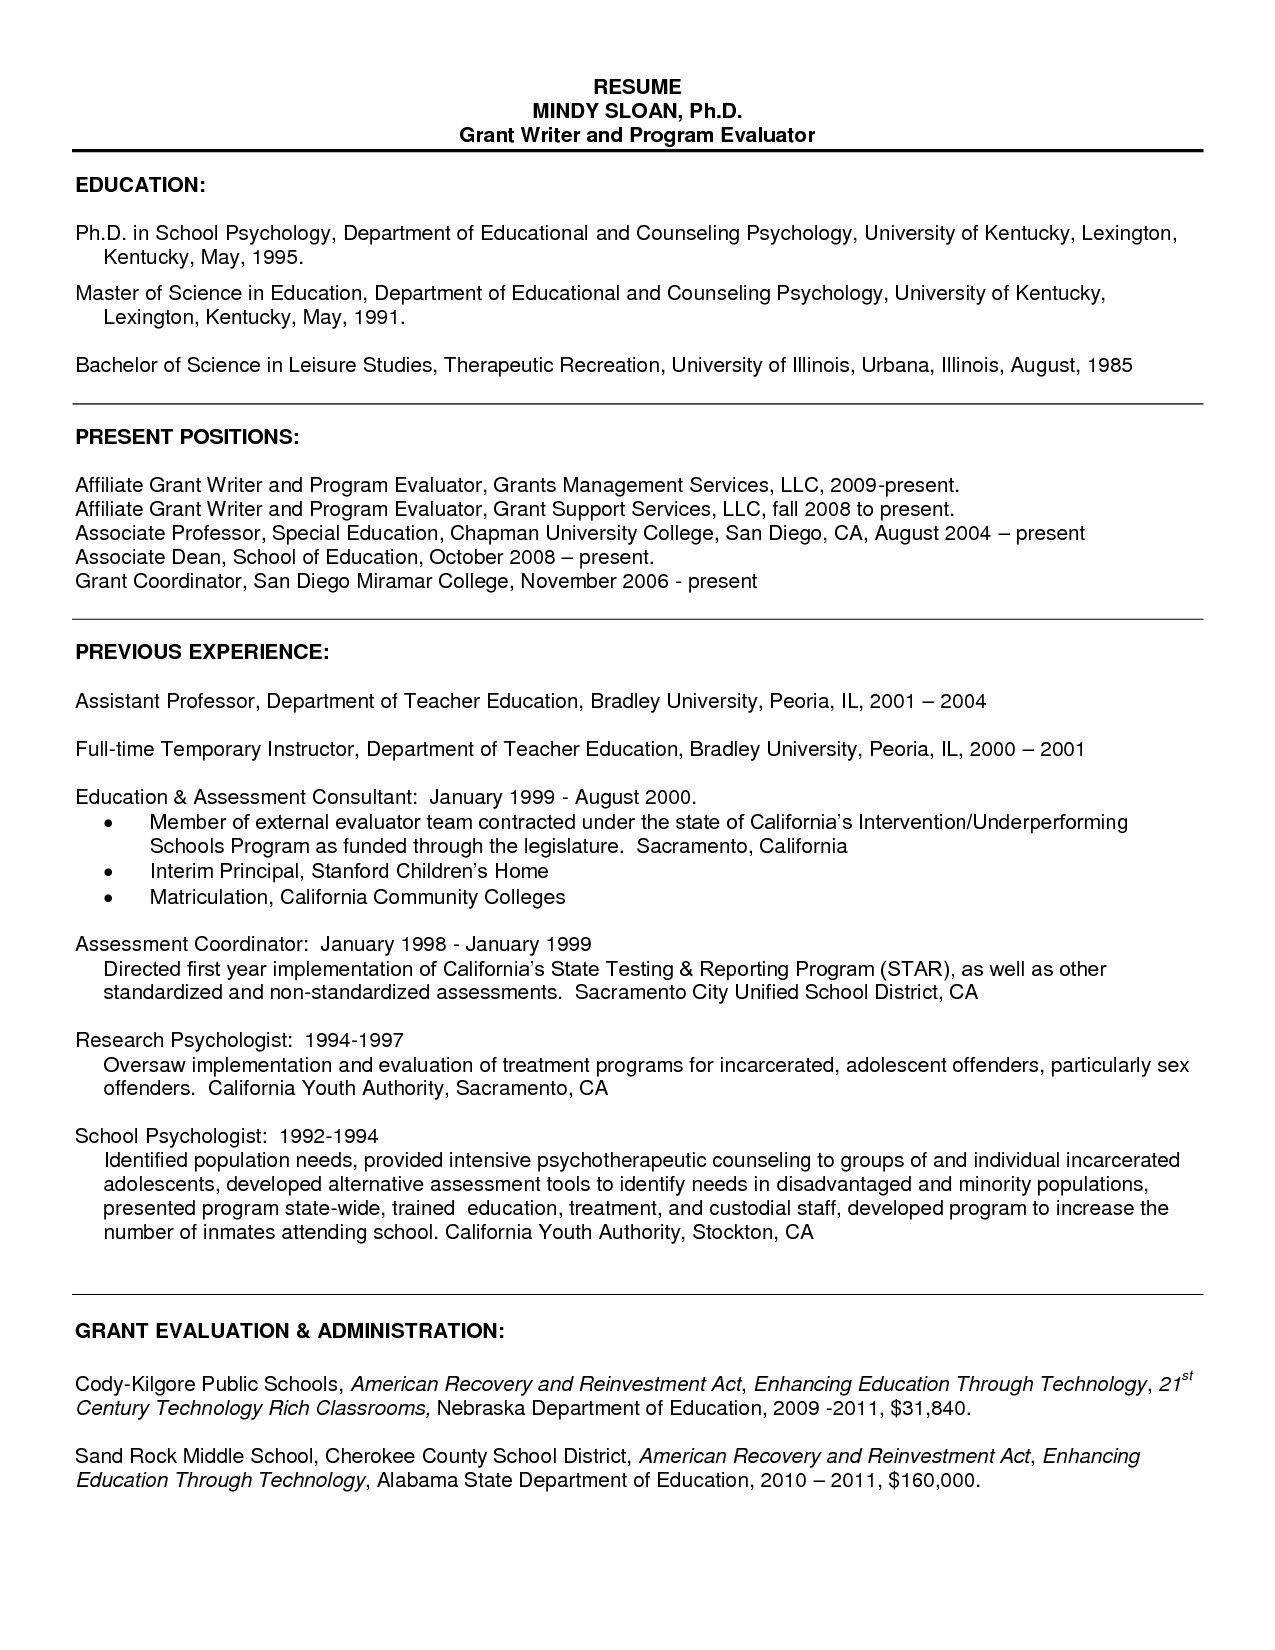 sample resume for psychology graduate http